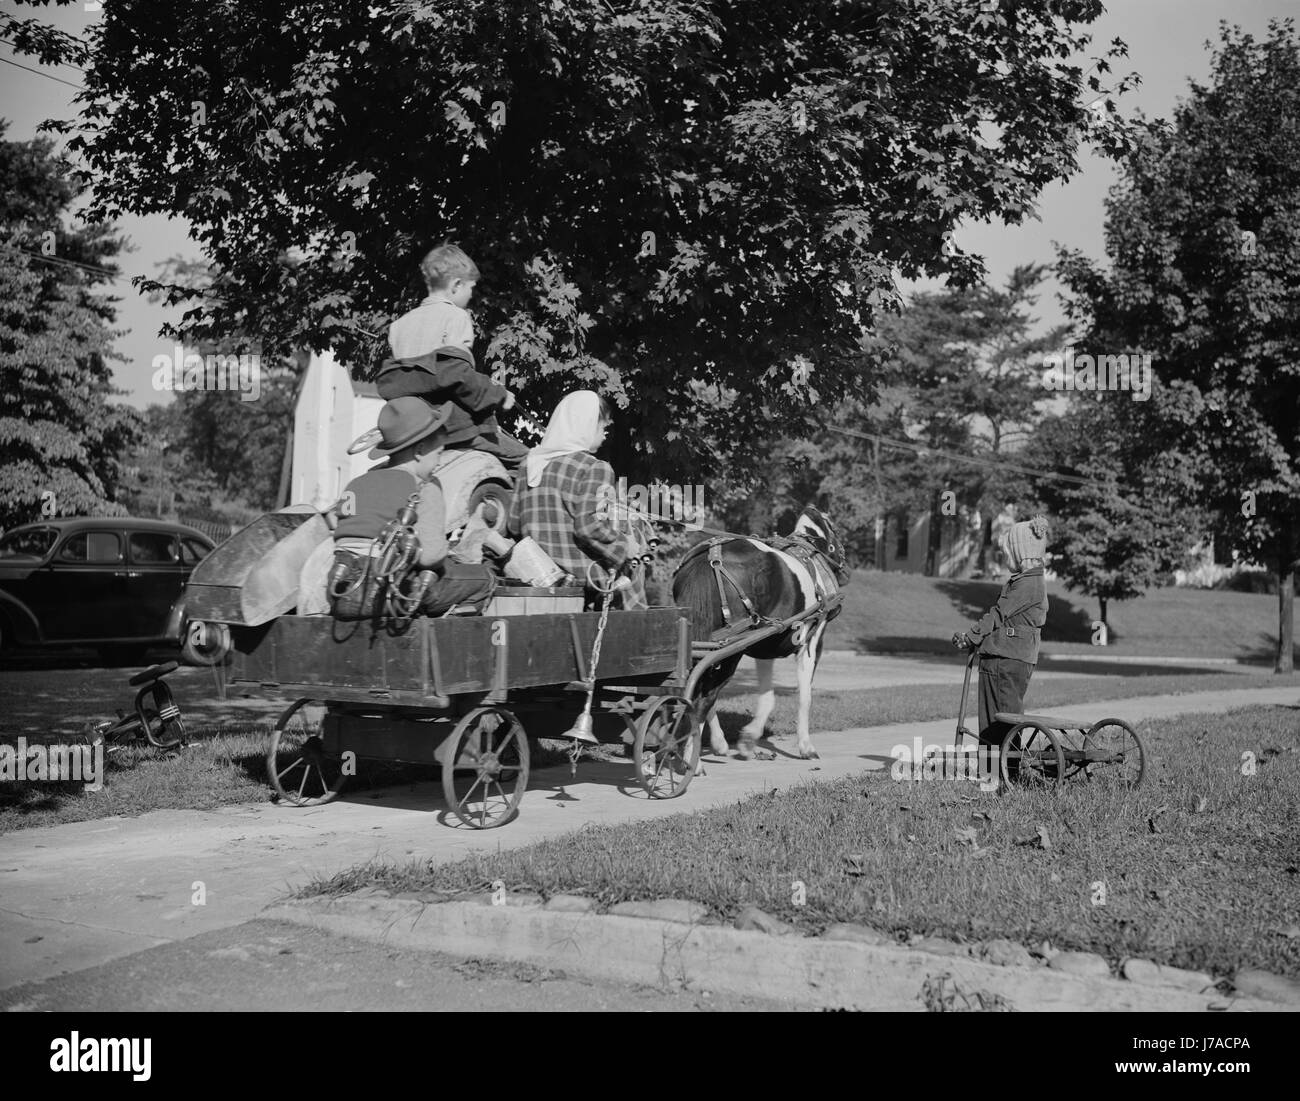 Youngsters collecting scrap on a pony cart for donation to their war industries, 1942. - Stock Image